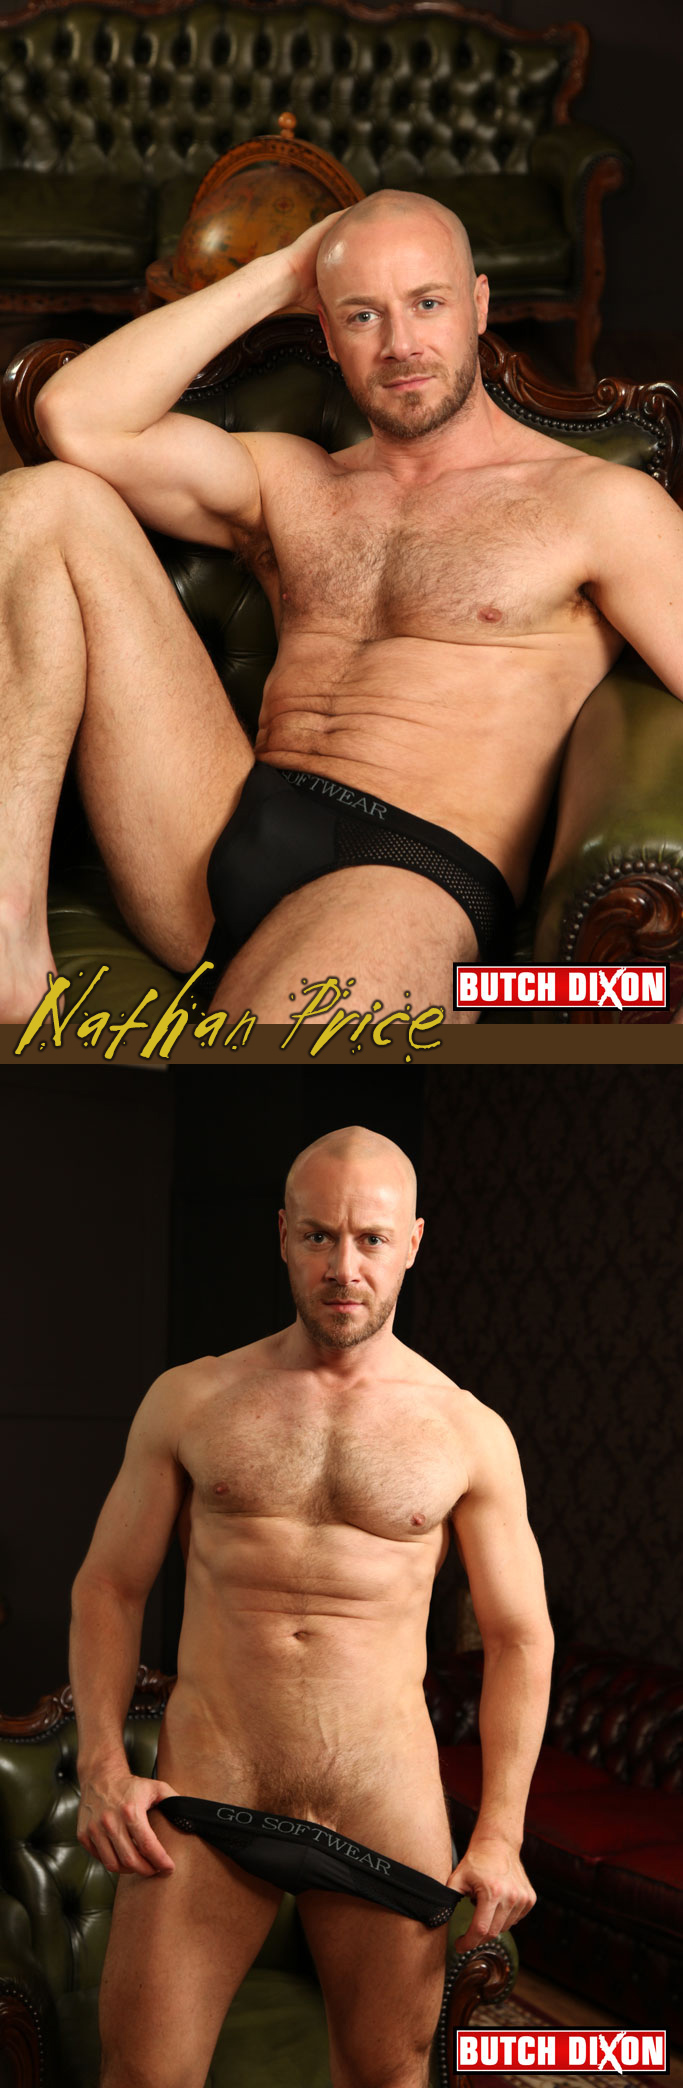 Nathan Price in a Go Softwear Jockstrap